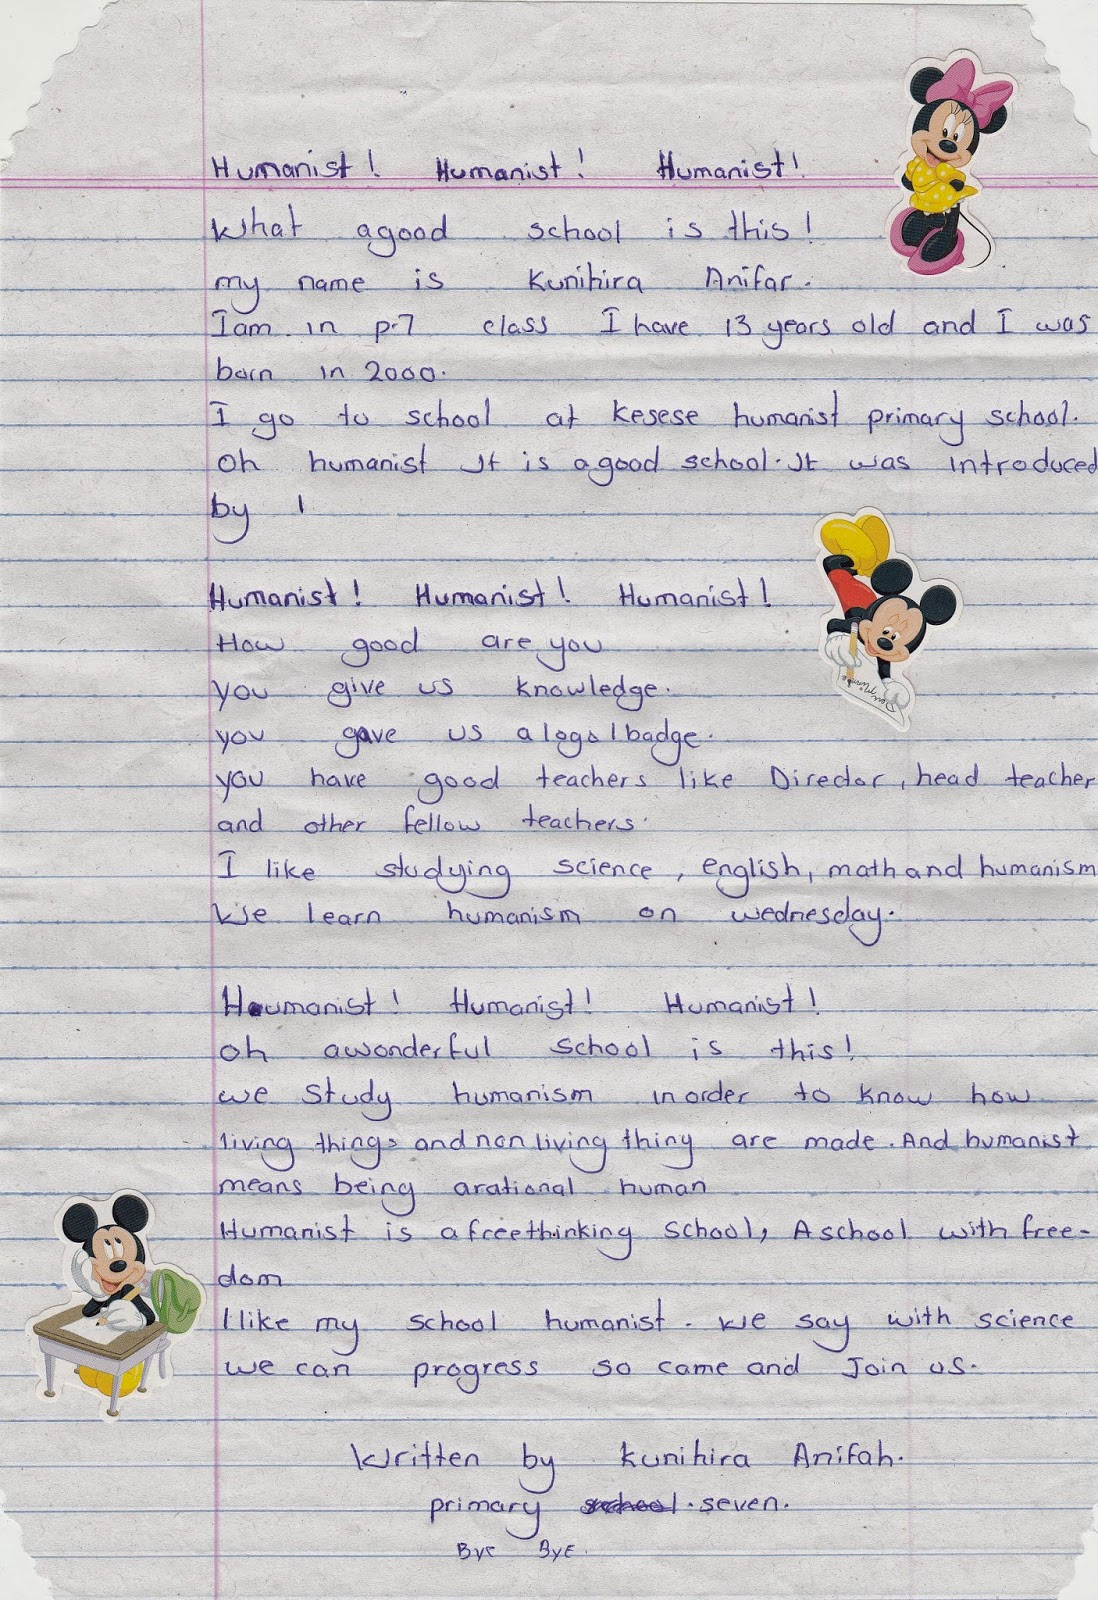 My secret atheist blog students of kasese humanist primary school heres the original letter which i very likely mis transcribed somehow altavistaventures Image collections